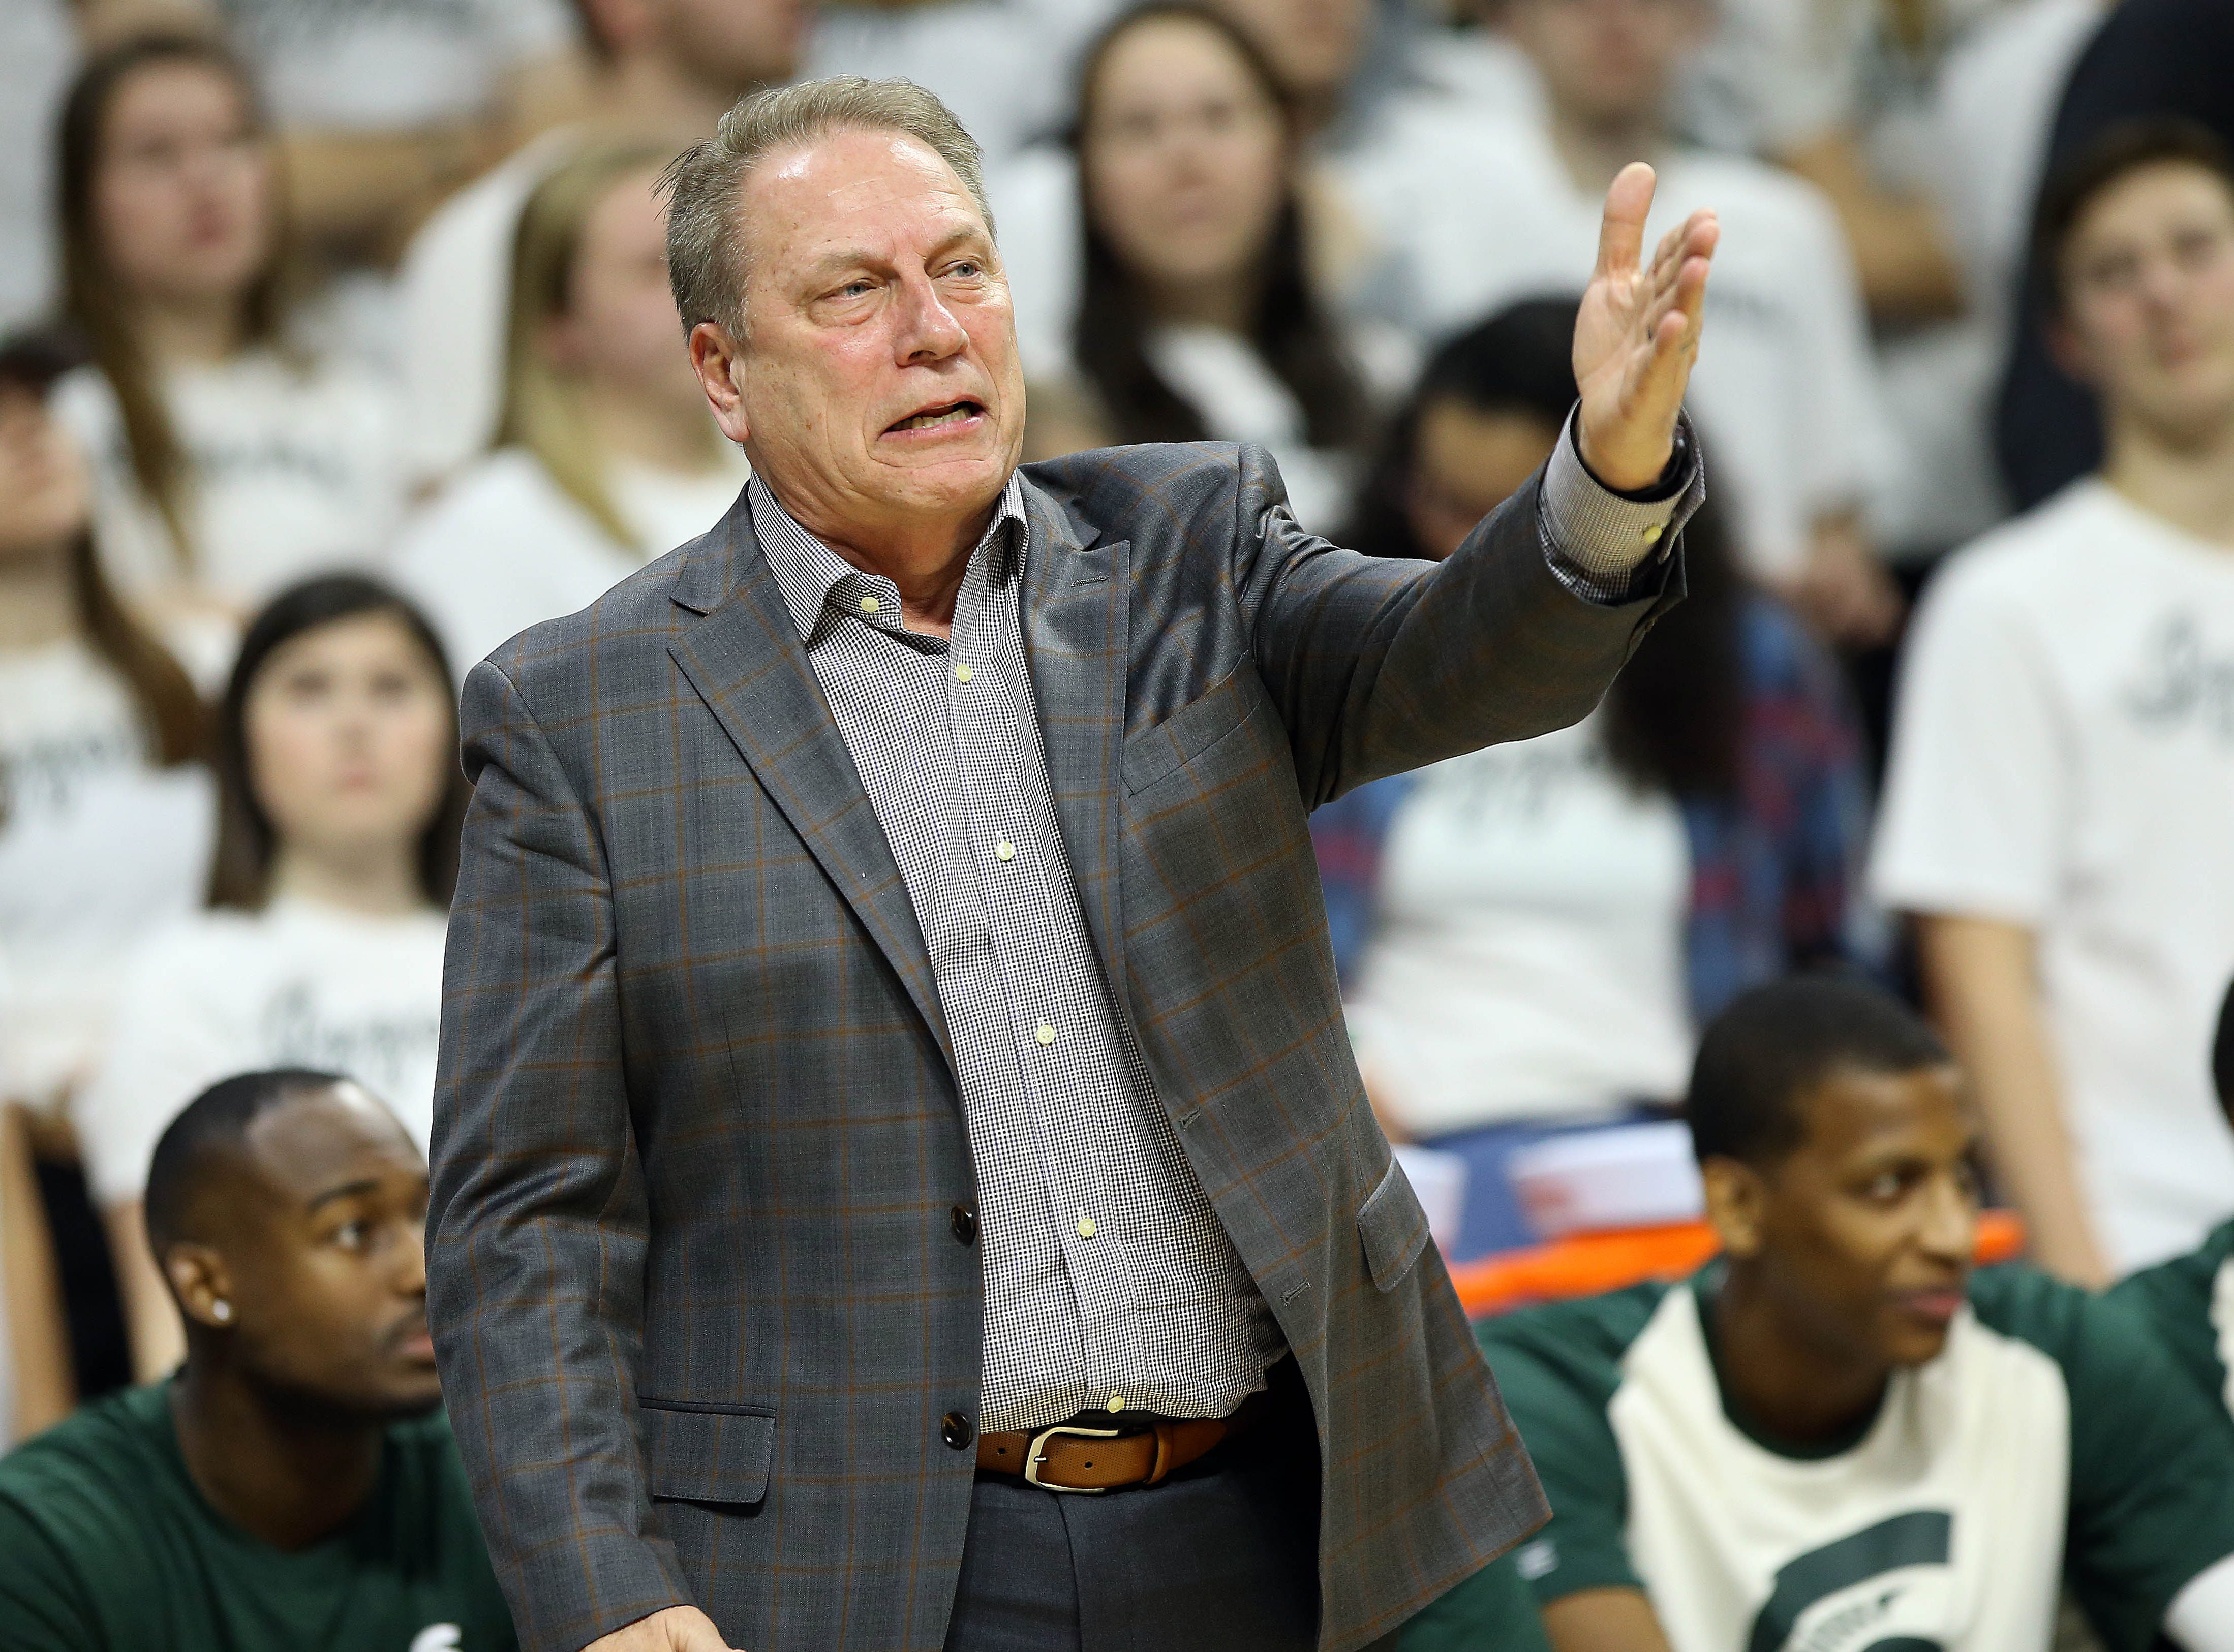 Feb 2, 2019; East Lansing, MI, USA; Michigan State Spartans head coach Tom Izzo gestures during the first half  against the Indiana Hoosiers at the Breslin Center. Mandatory Credit: Mike Carter-USA TODAY Sports